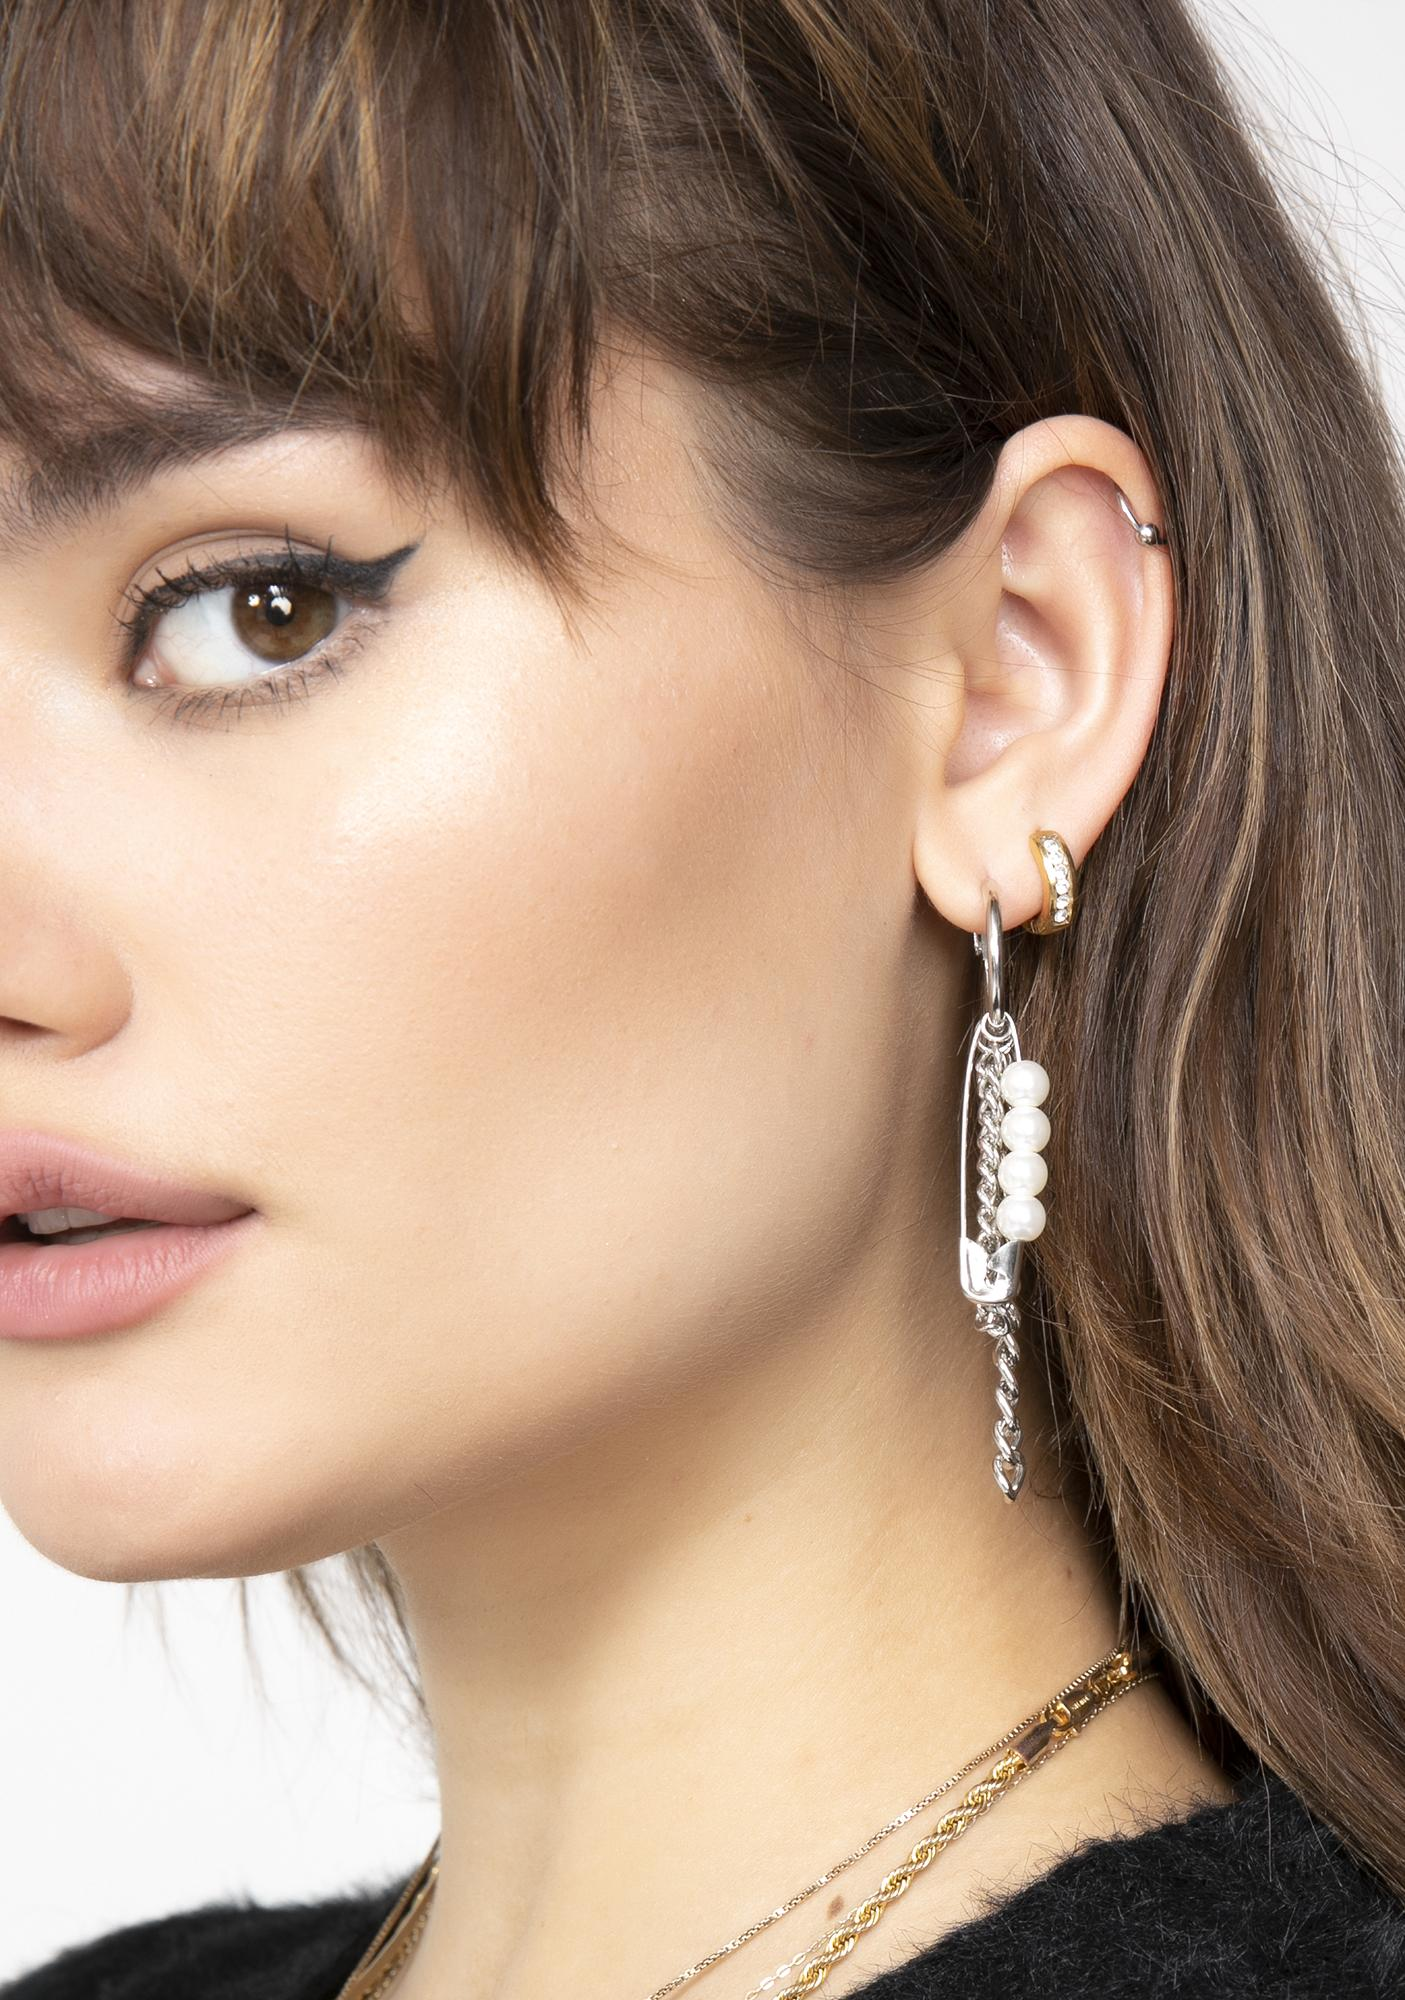 Pearlescent Hype Chain Earrings